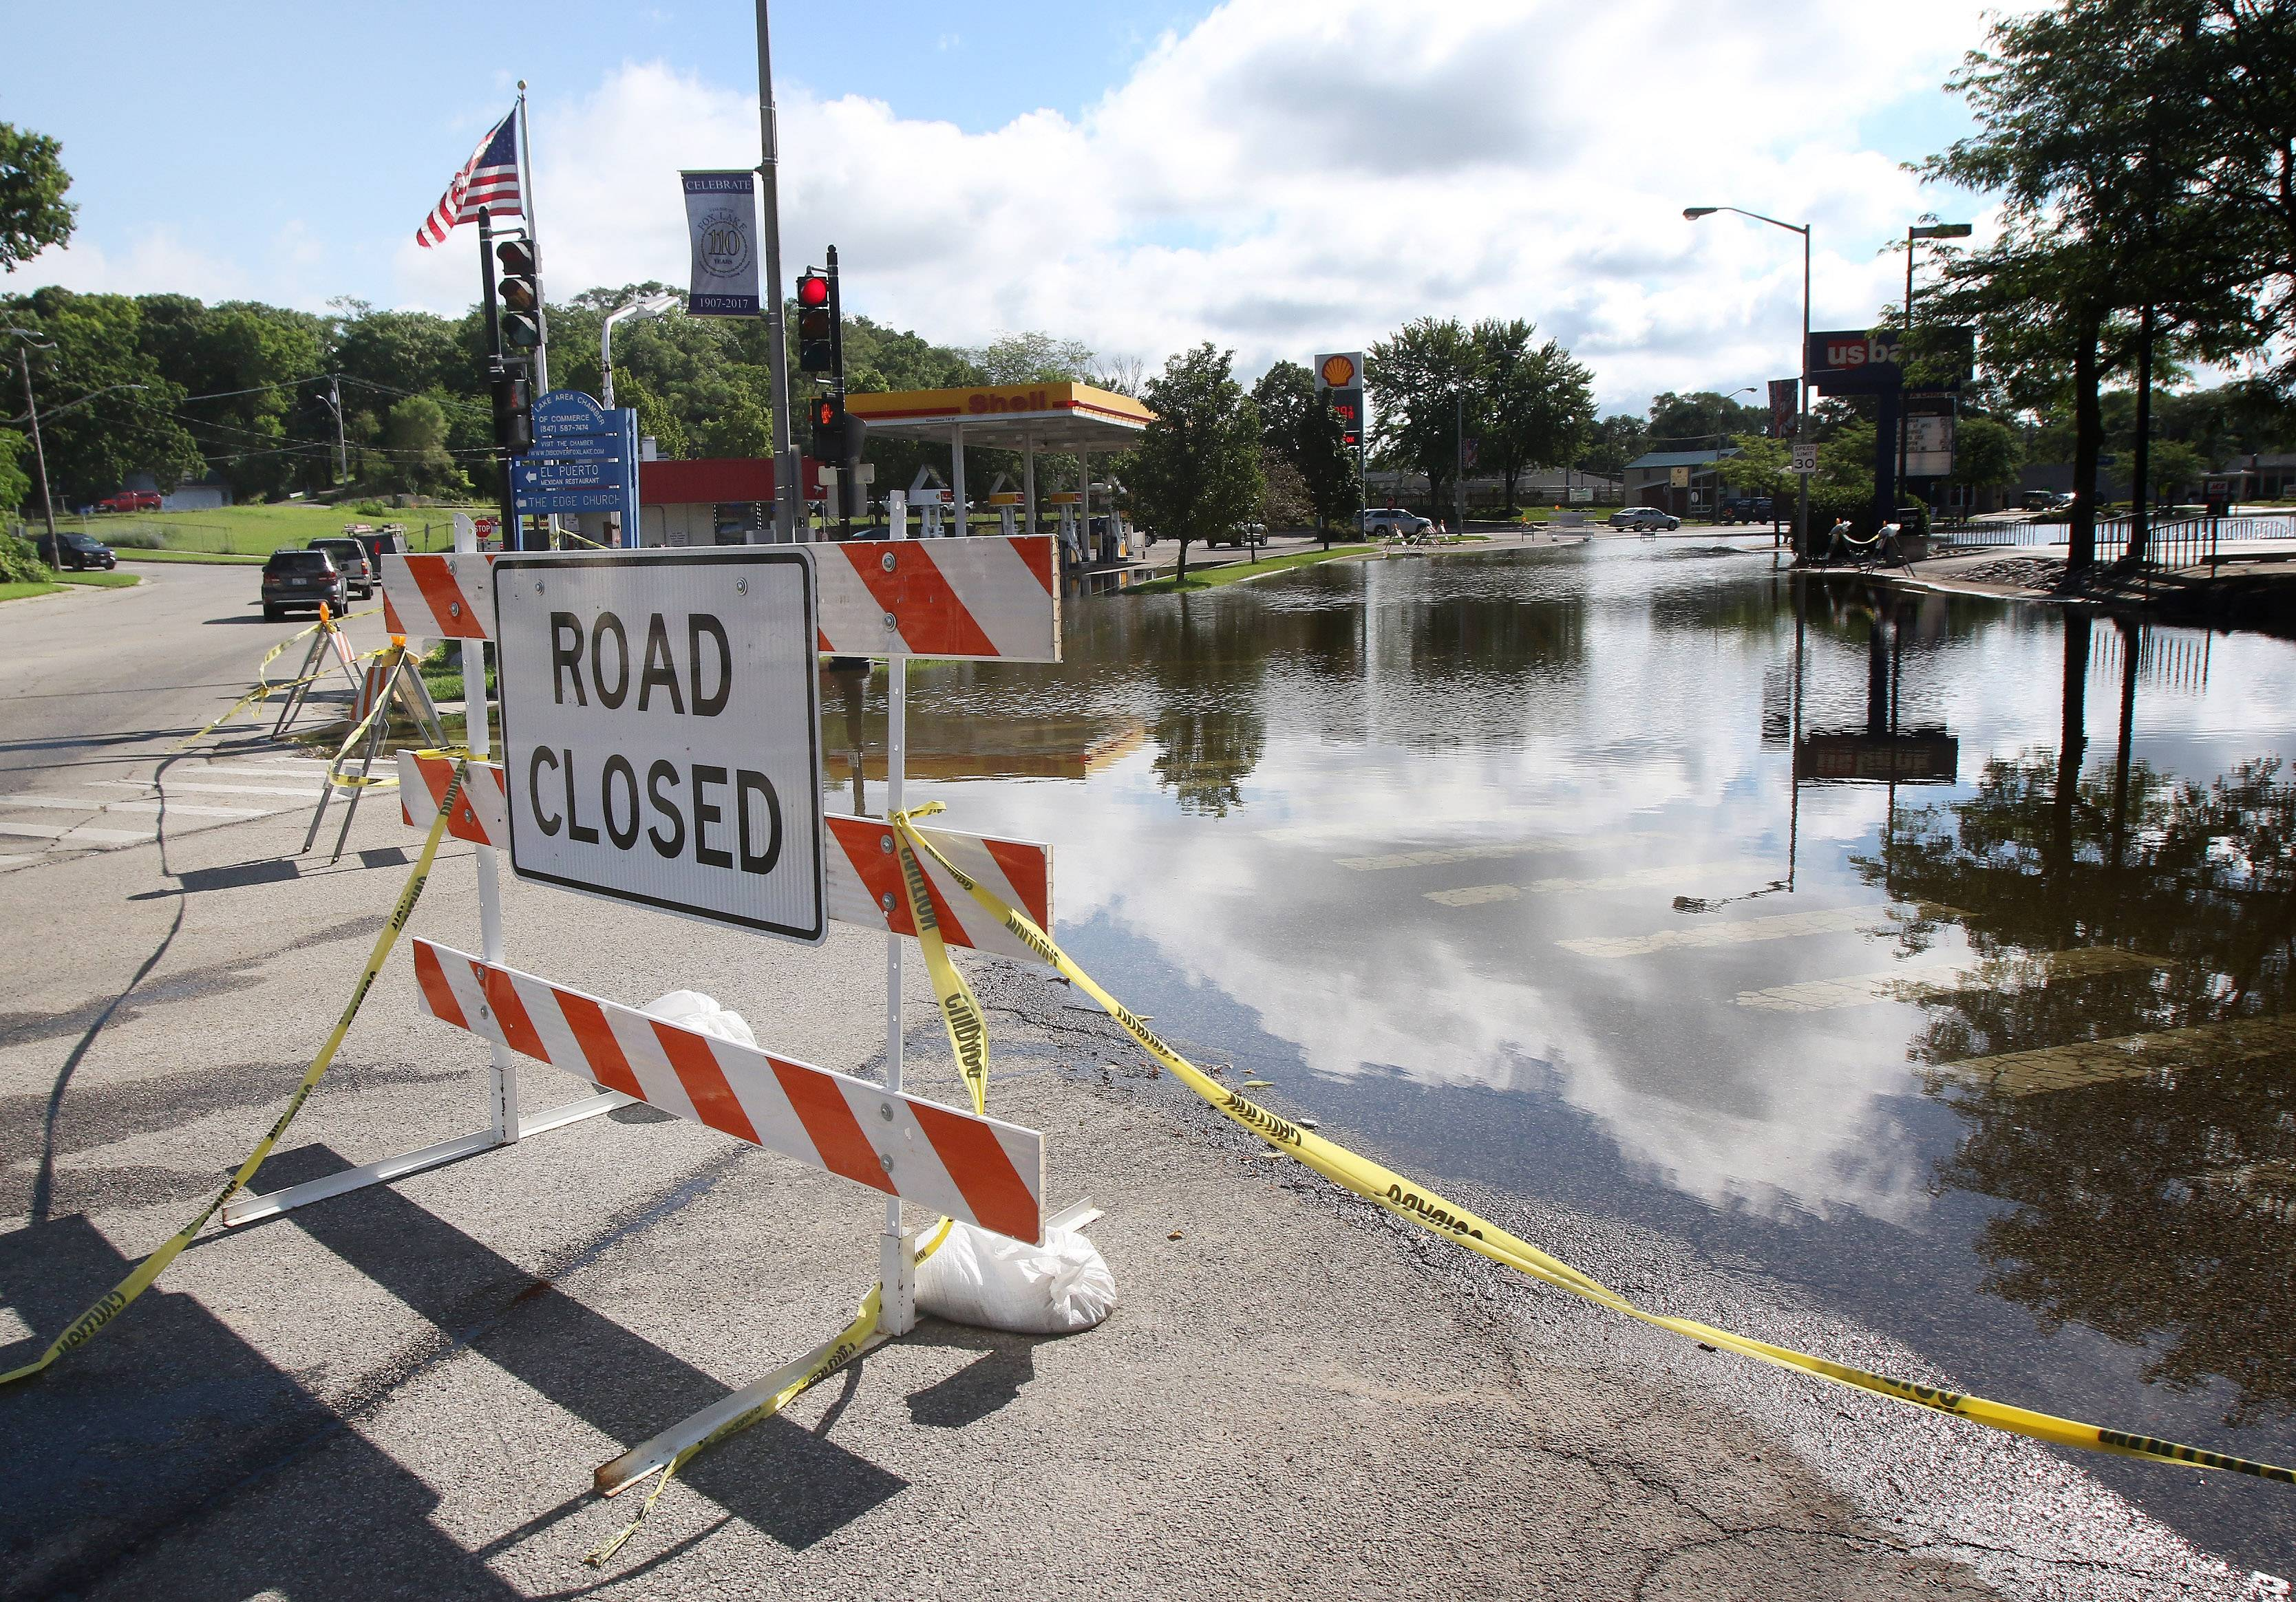 Gilbert R. Boucher II/gboucher@dailyherald.comGrand Avenue is closed after flooding in Fox Lake on Monday. The Chain O'Lakes is closed to boats and the downtown area has several streets closed due to high water.